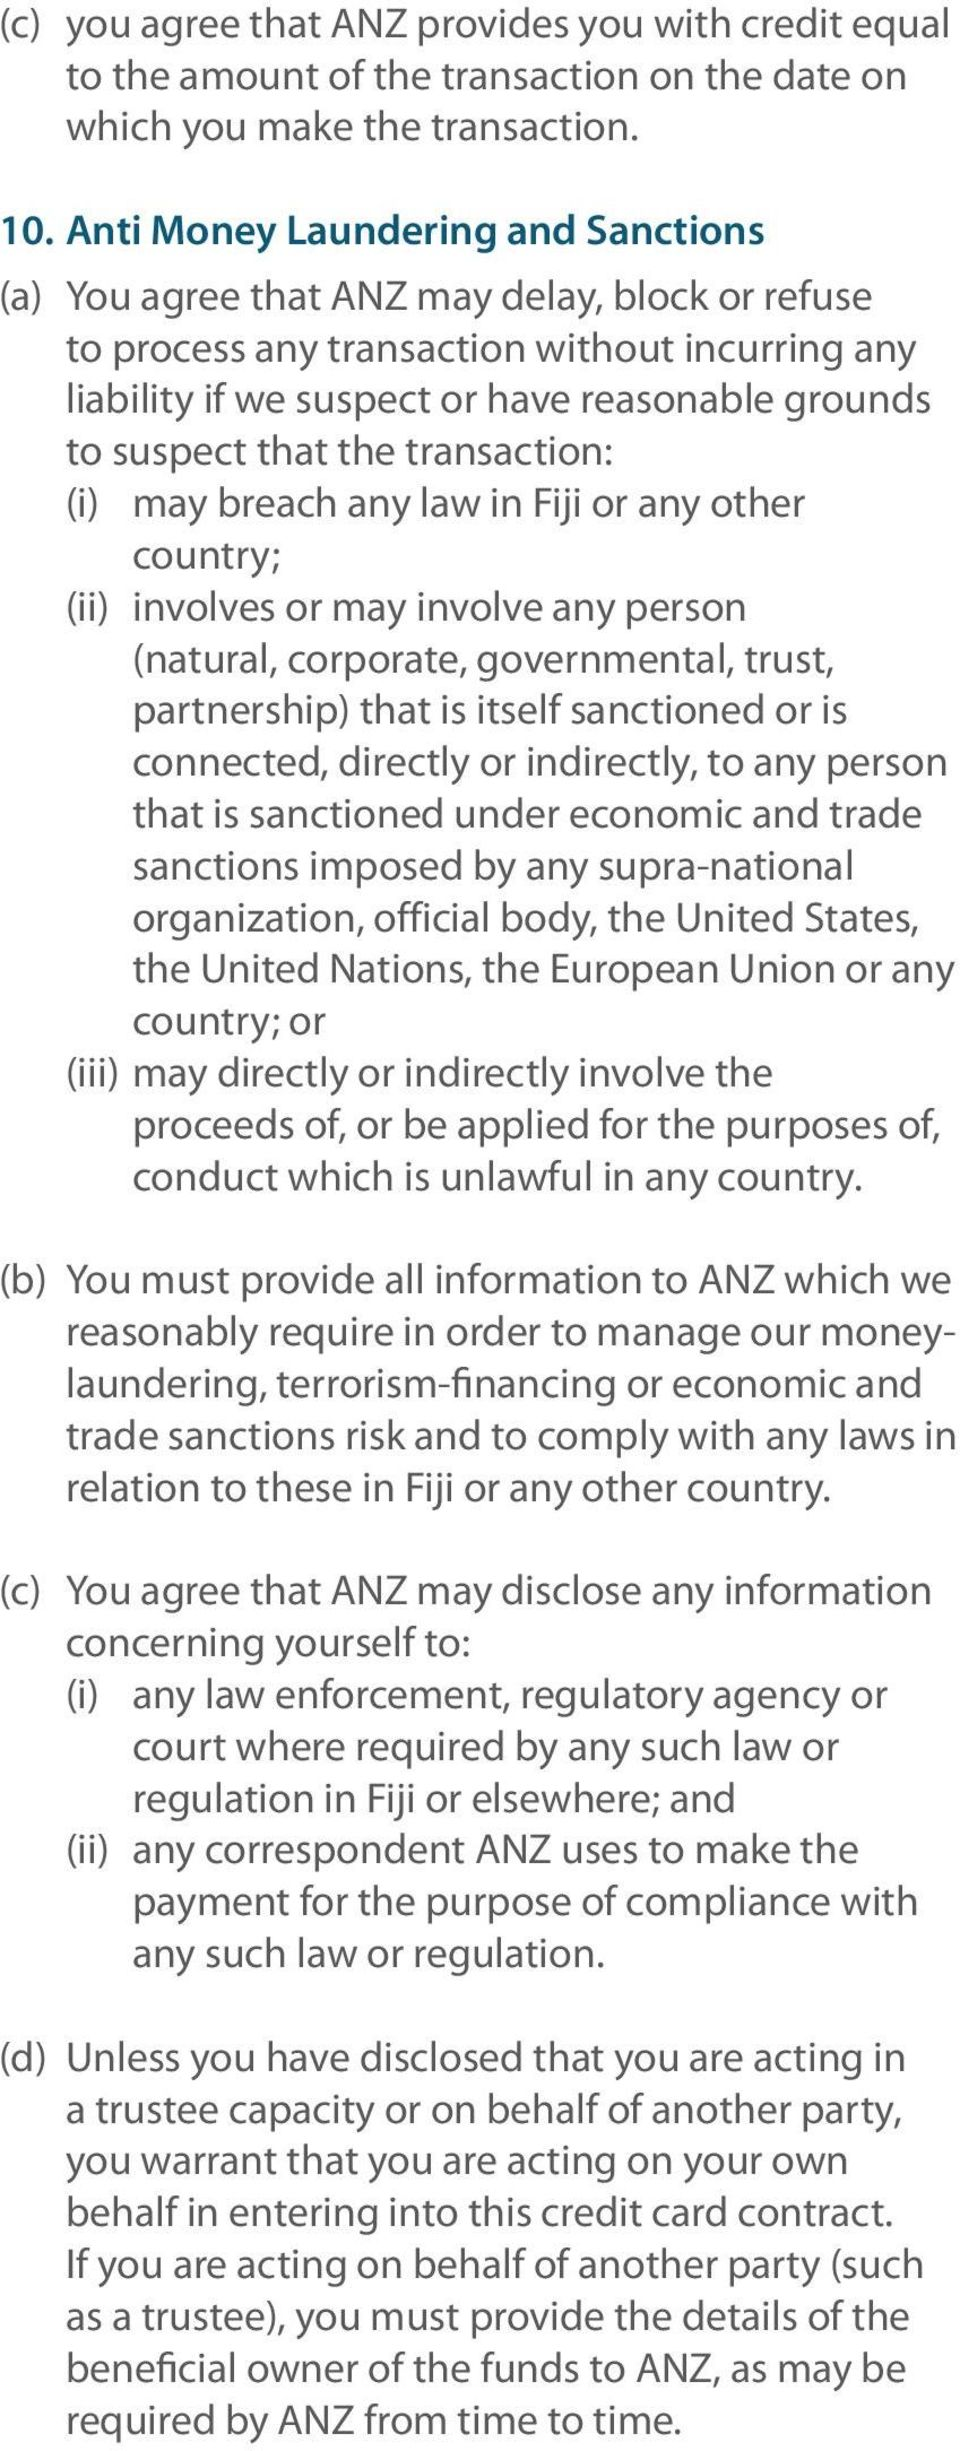 that the transaction: (i) may breach any law in Fiji or any other country; (ii) involves or may involve any person (natural, corporate, governmental, trust, partnership) that is itself sanctioned or